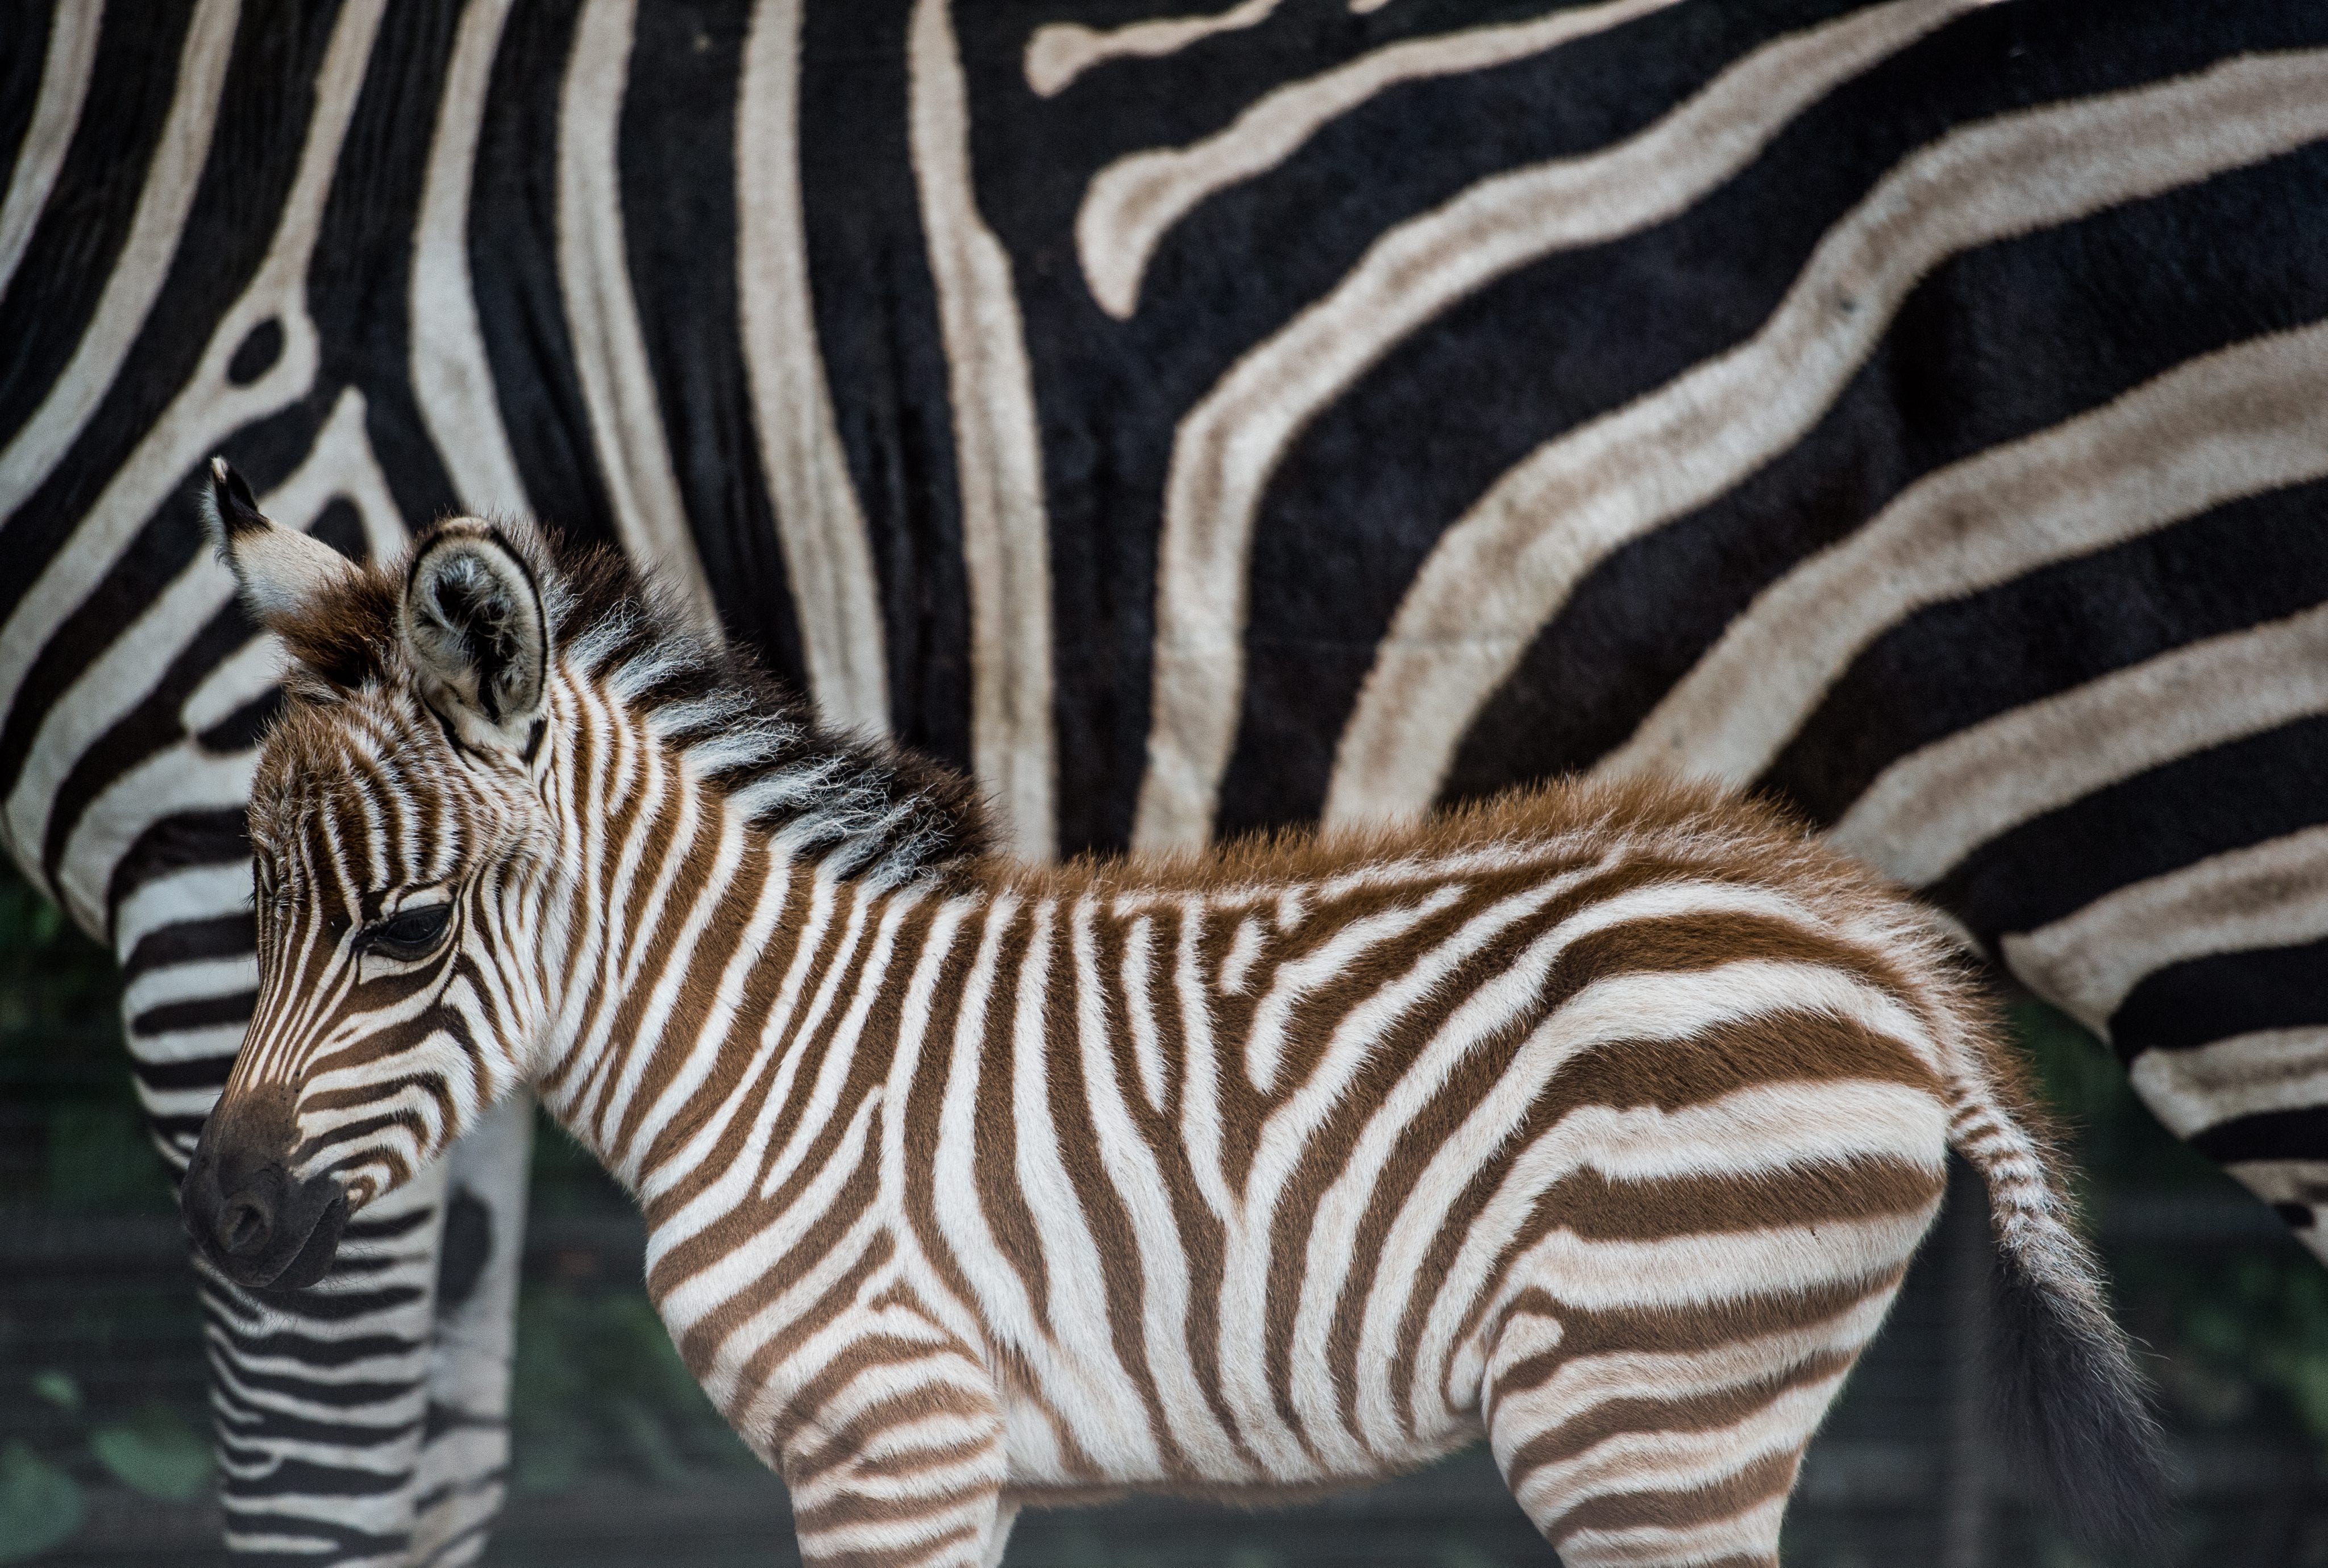 Did this zoo paint a donkey to look like a zebra?